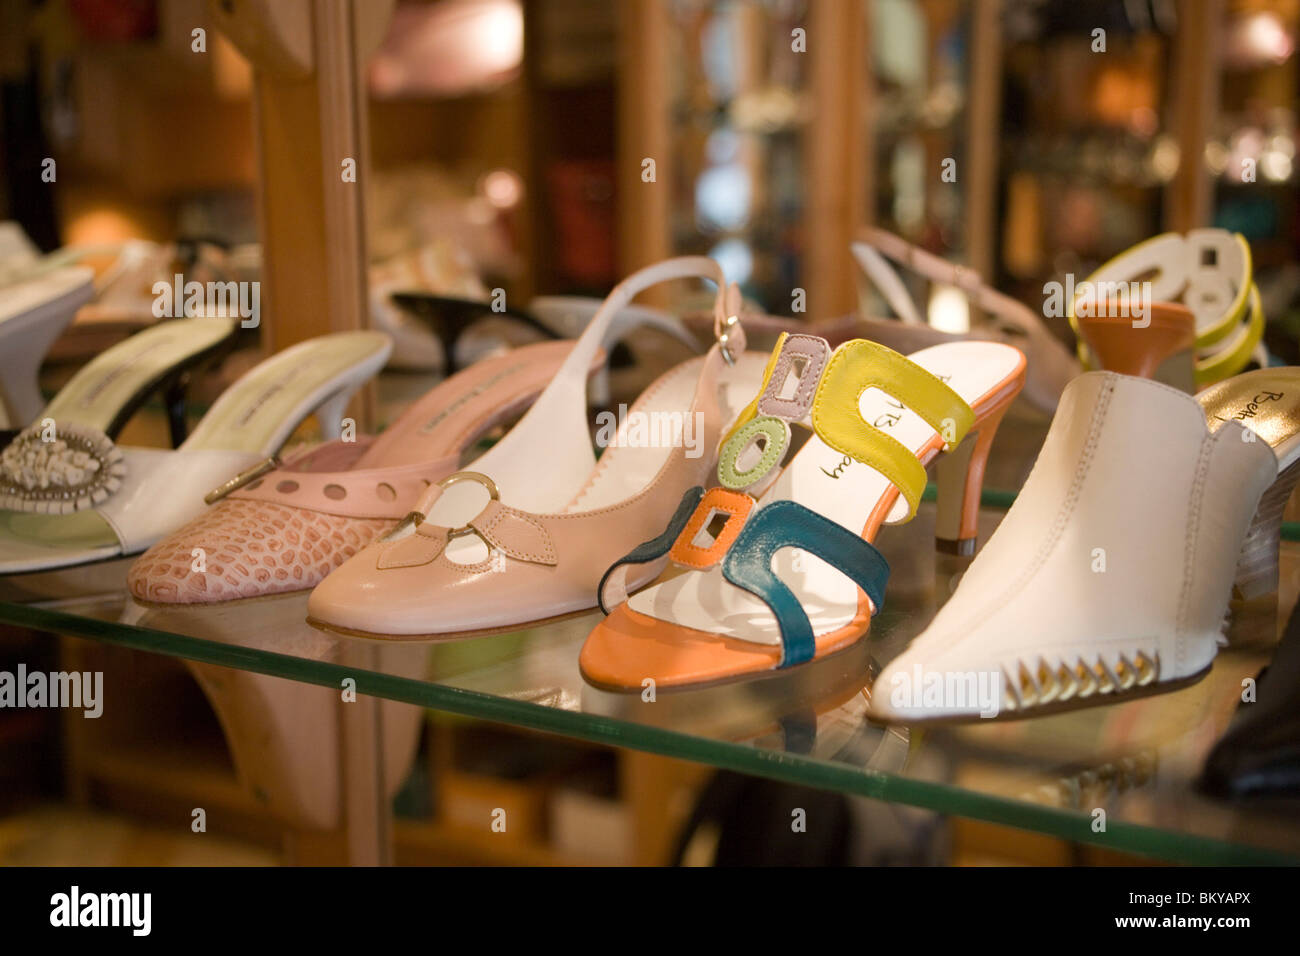 Outlay of a shoe boutique, Exclusive shoesof a shoe boutique at Vaci Street, Pest, Budapest, Hungary Stock Photo